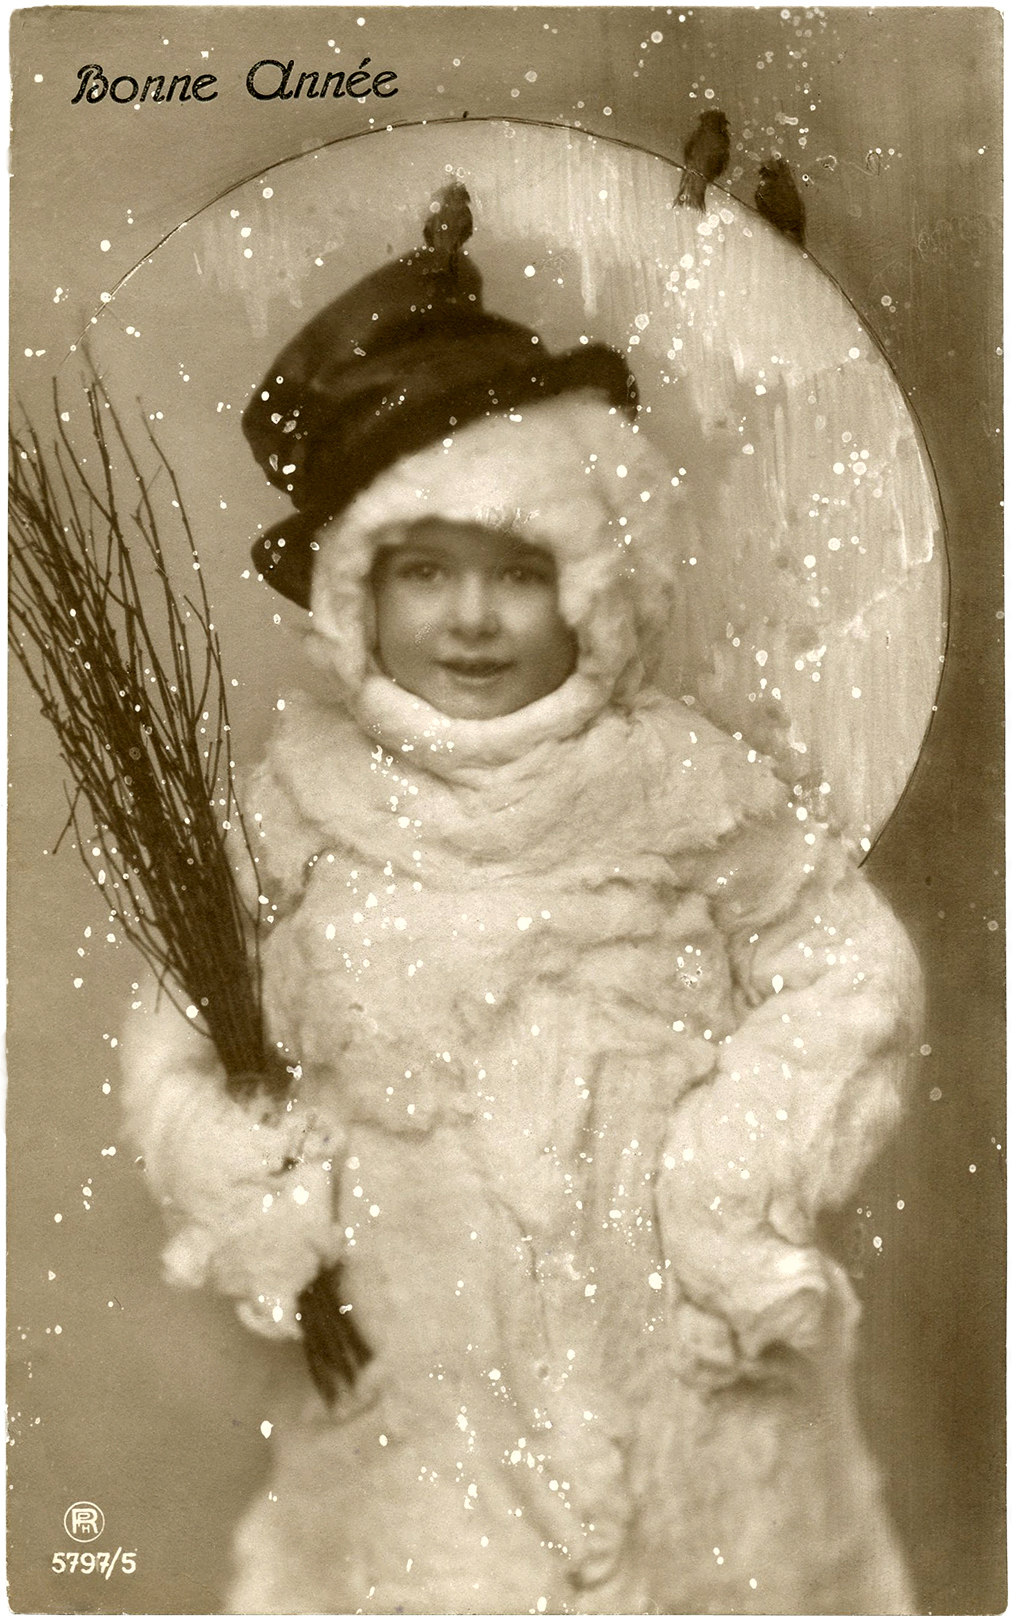 christmas childhood patrick kavanagh essay A christmas childhood • patrick kavanagh was born on a farm in co monaghan his family farmhouse was located in hilly countryside, near a bog.